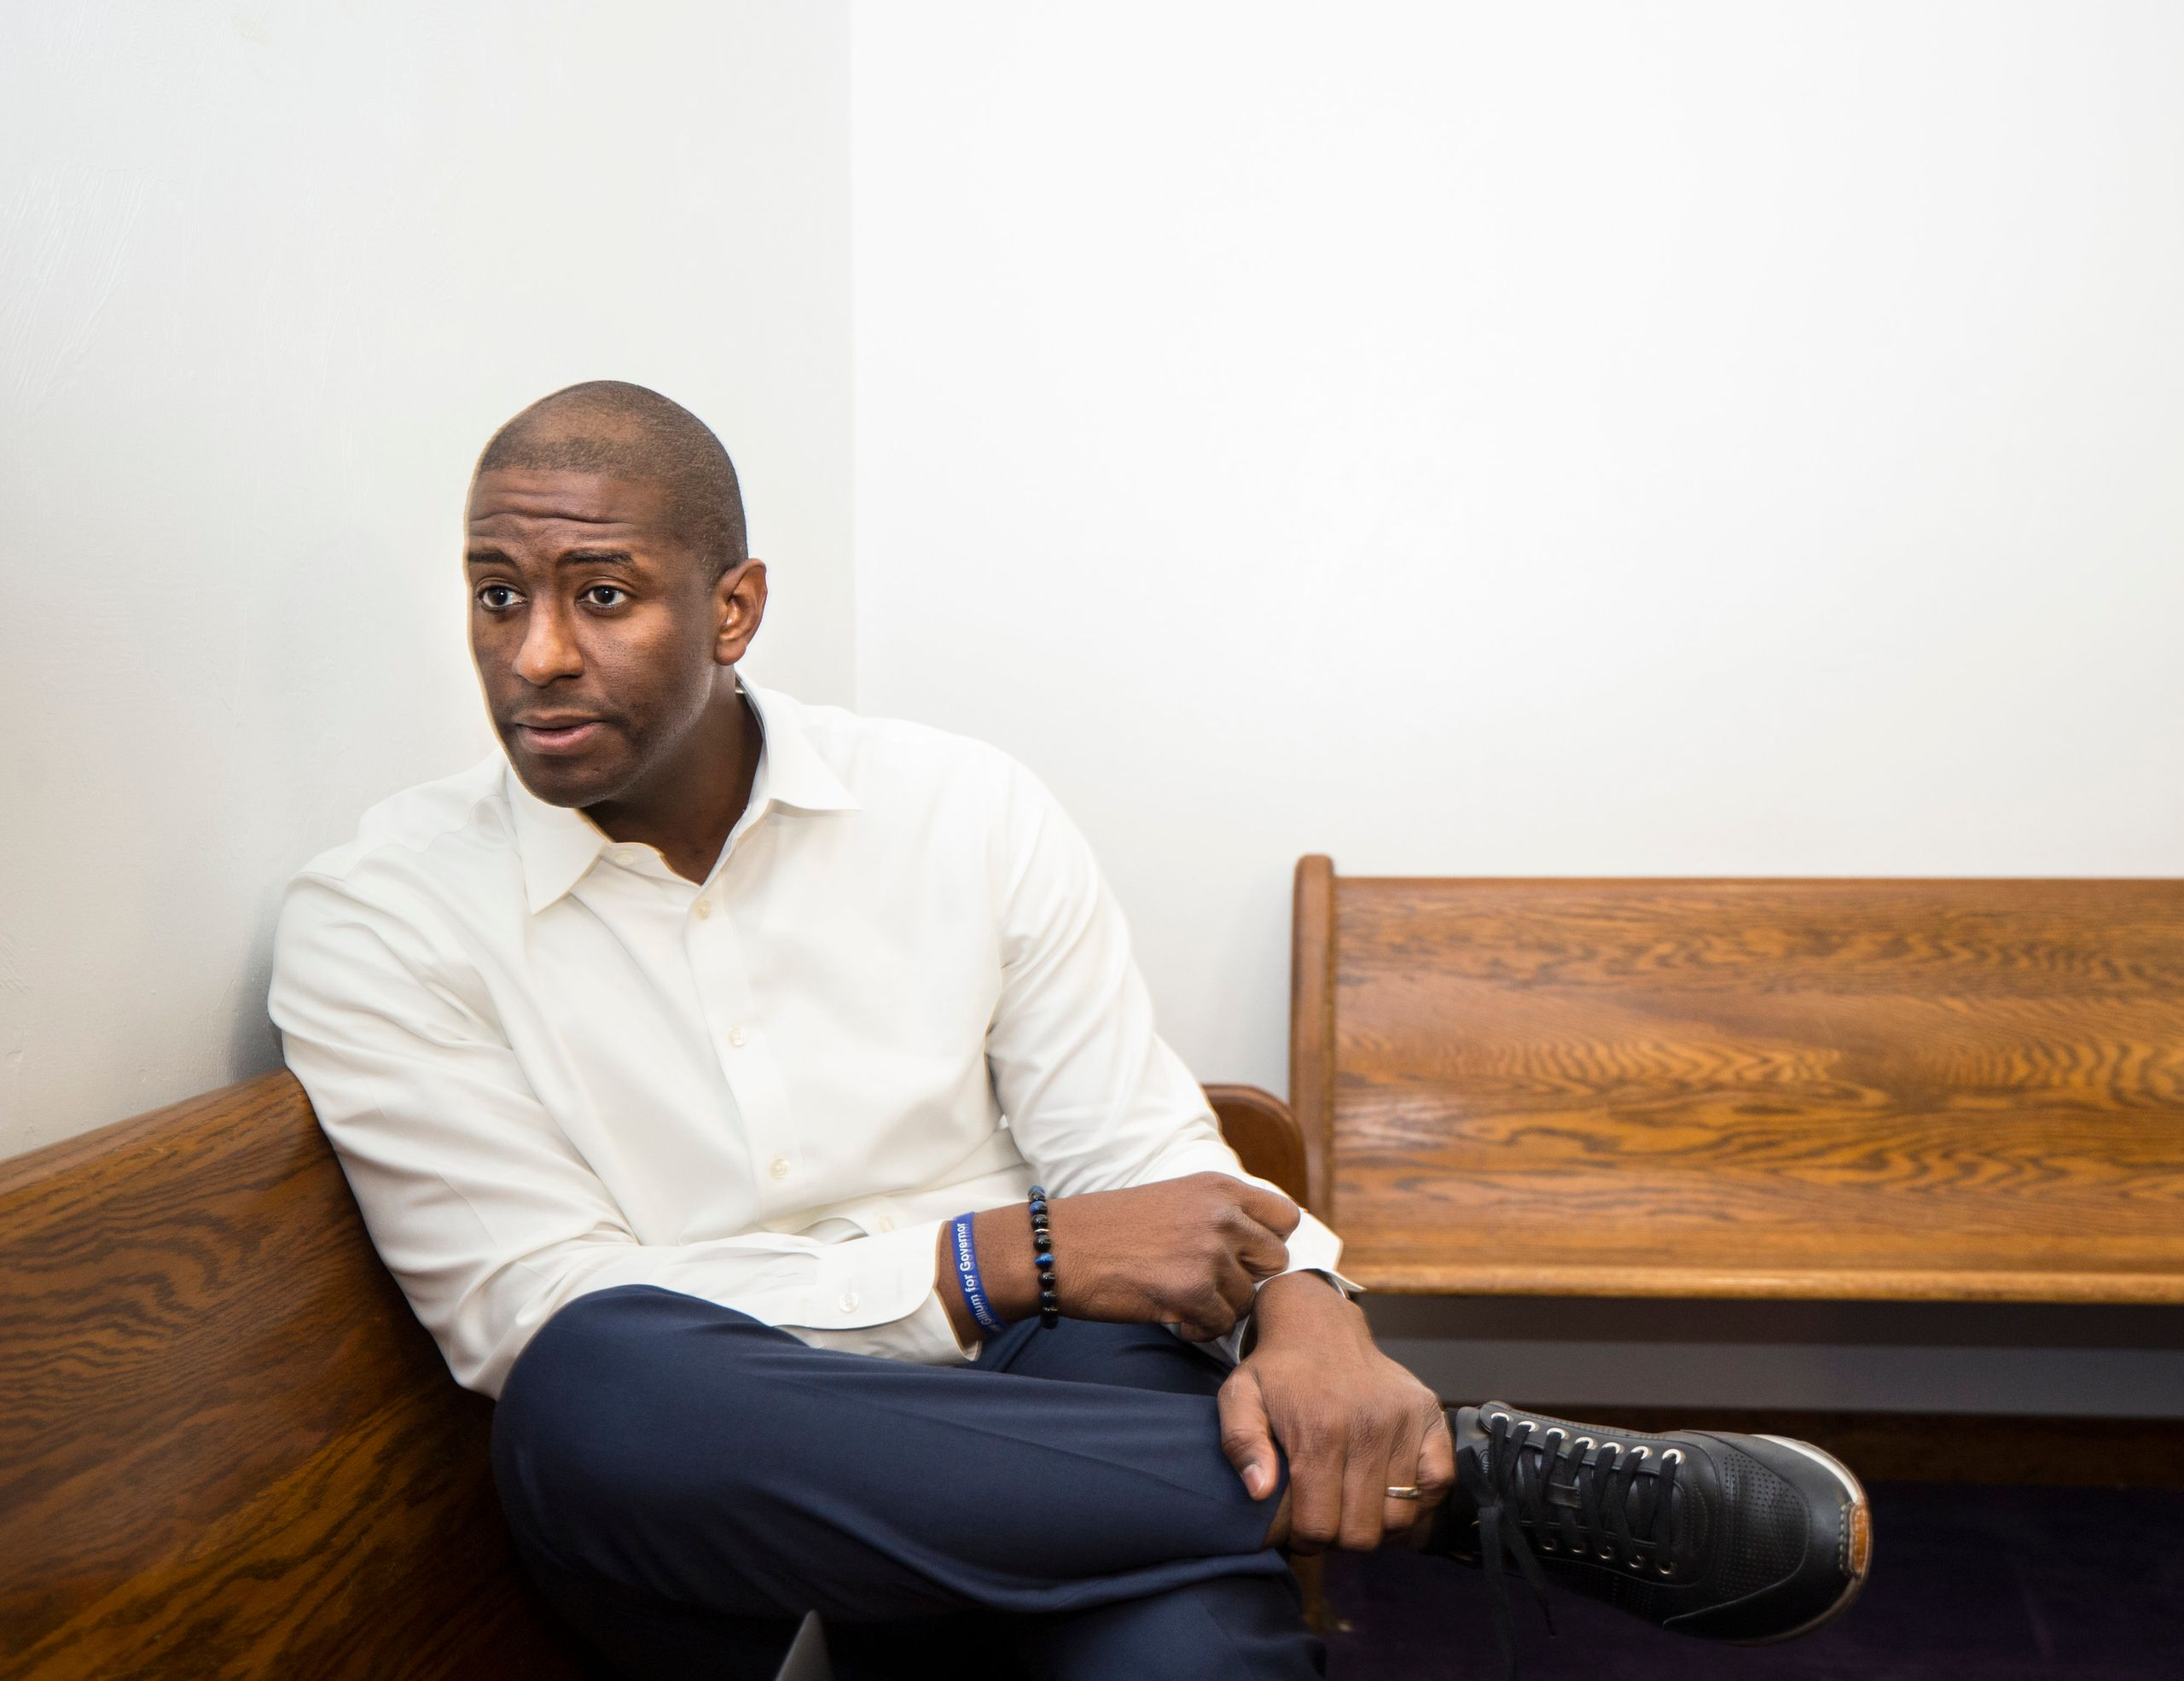 """I don't think people are looking for perfect. They're looking for real,"" says Gillum."